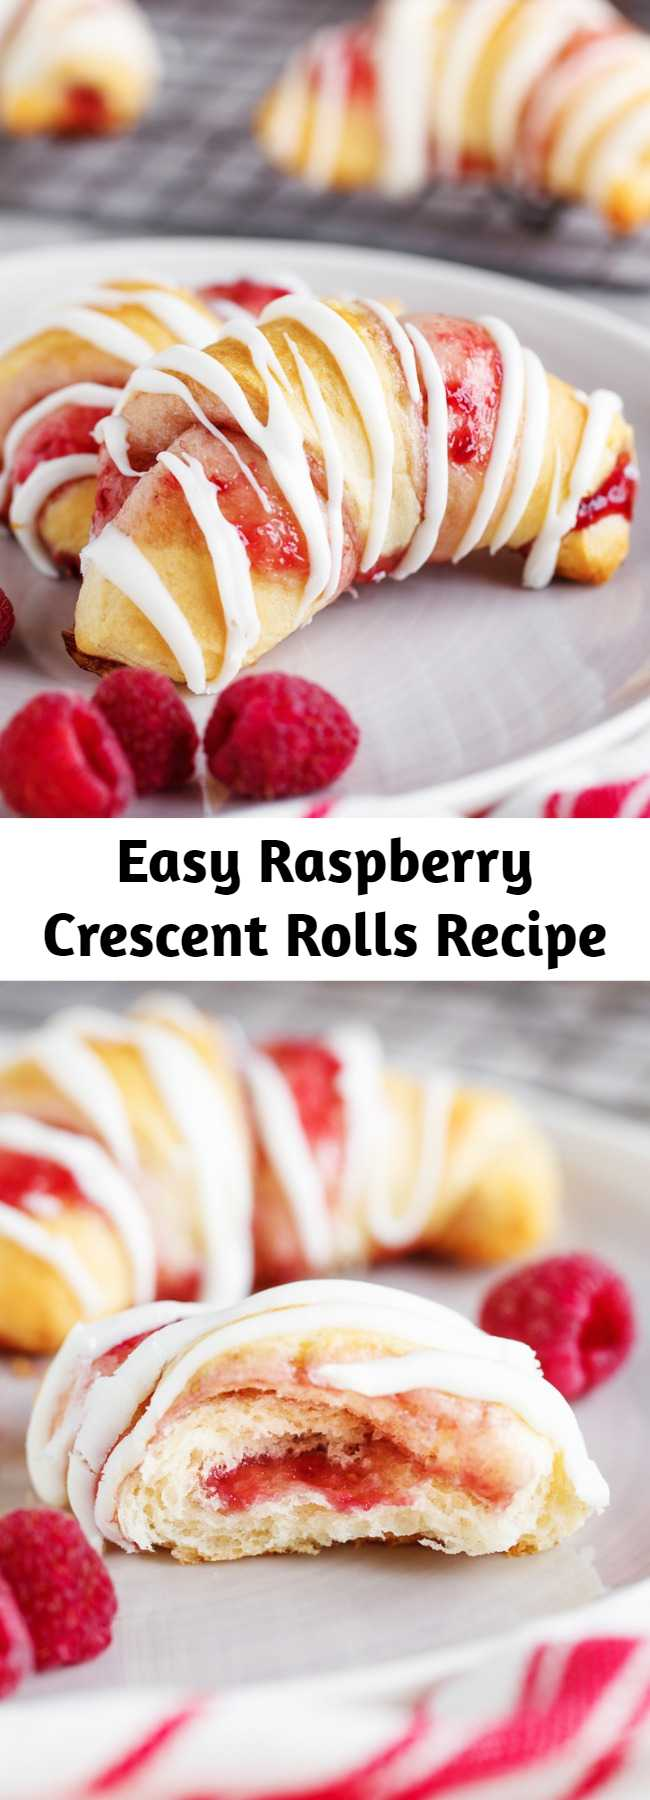 Easy Raspberry Crescent Rolls Recipe - Raspberry Crescent Rolls: a delicious sweet dessert that is quick to prepare and uses pre-made crescent rolls and delicious raspberry jam.